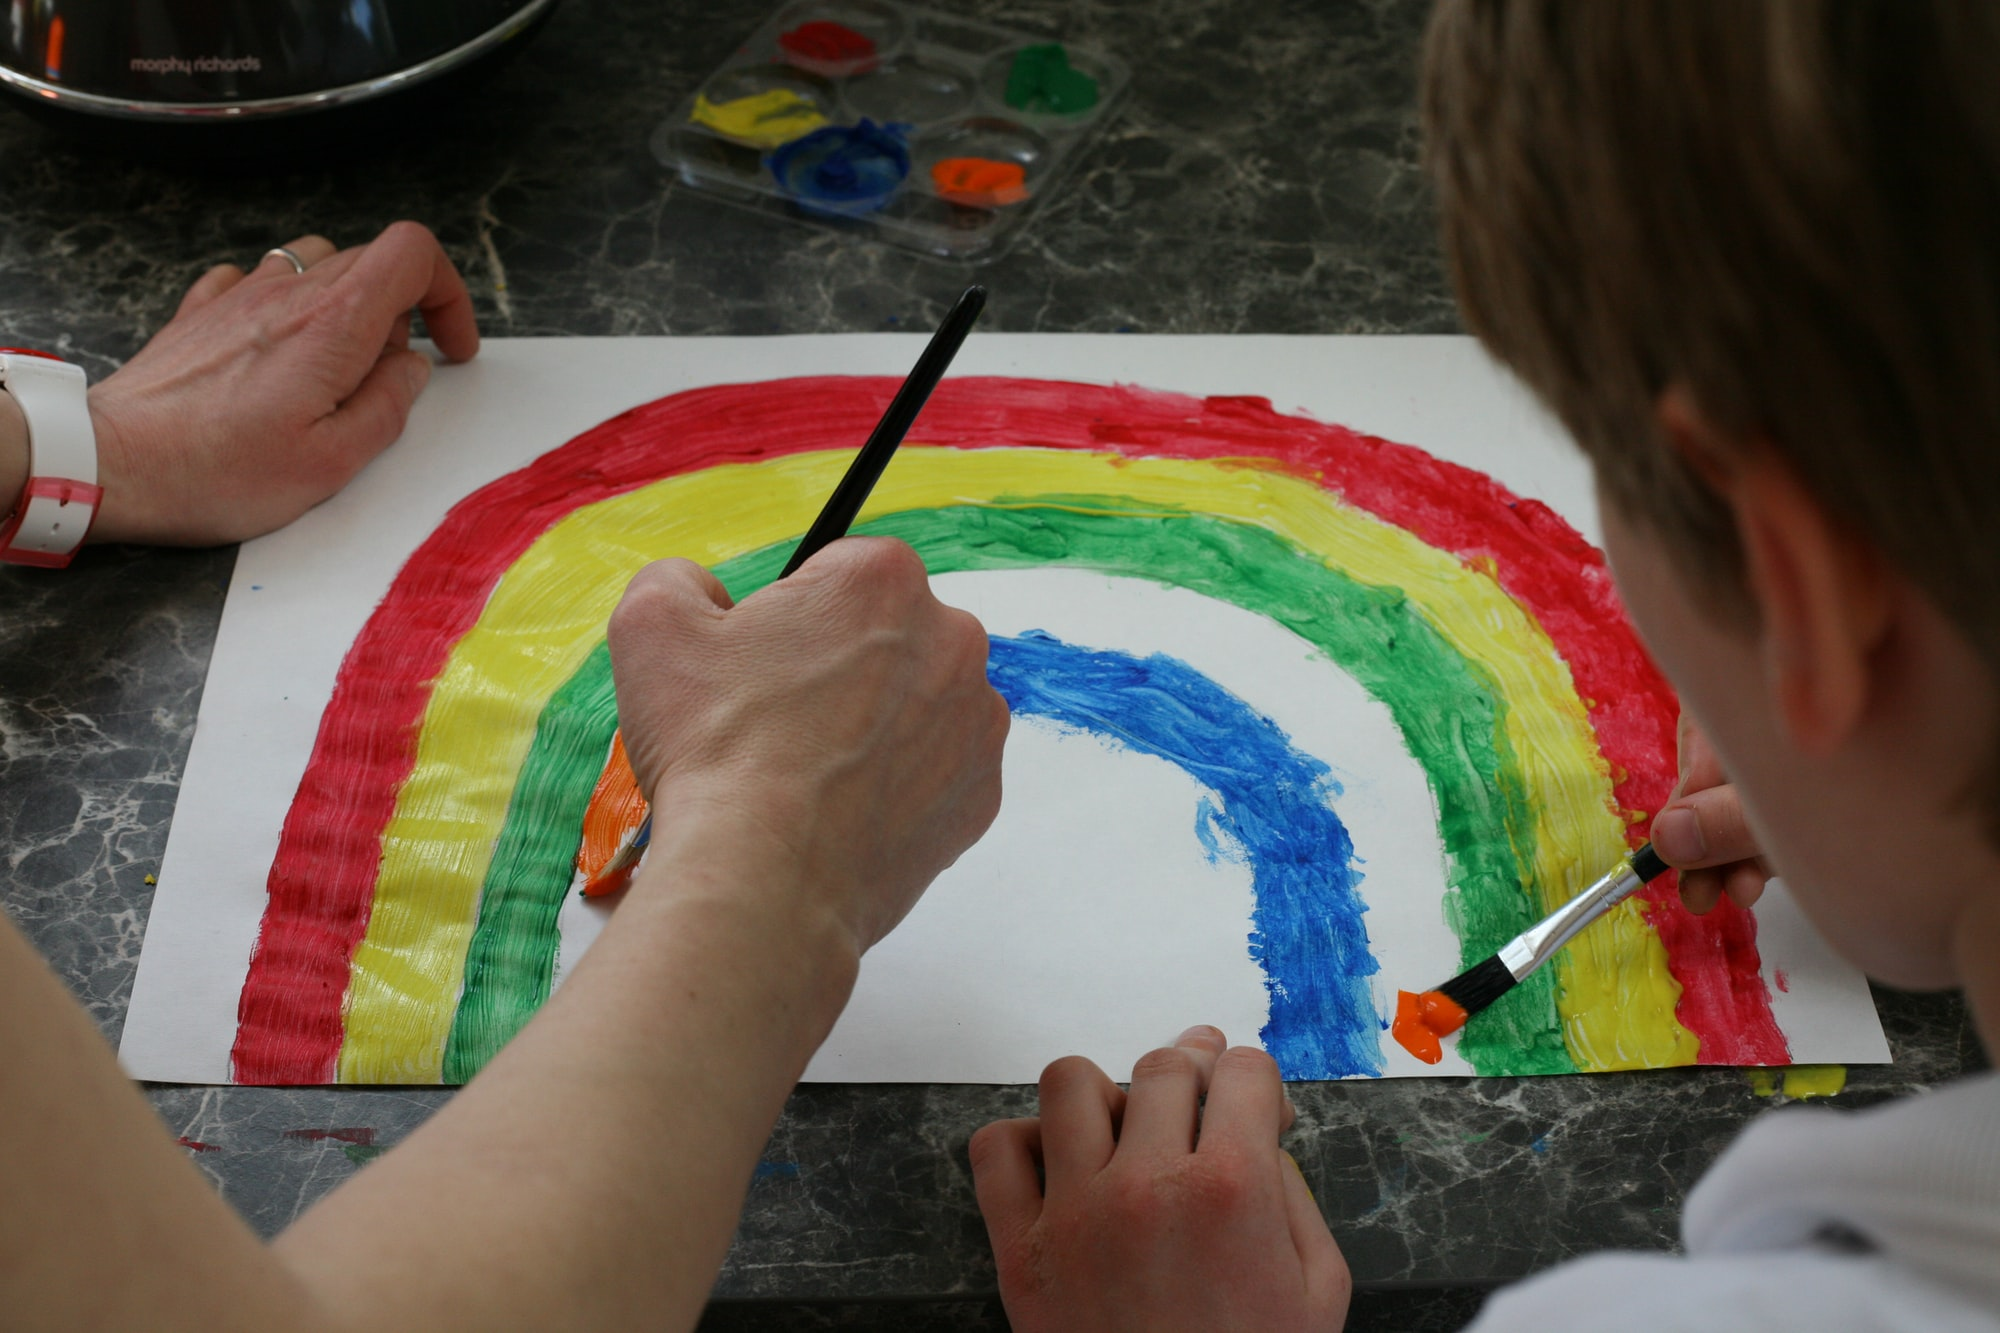 Painting rainbows